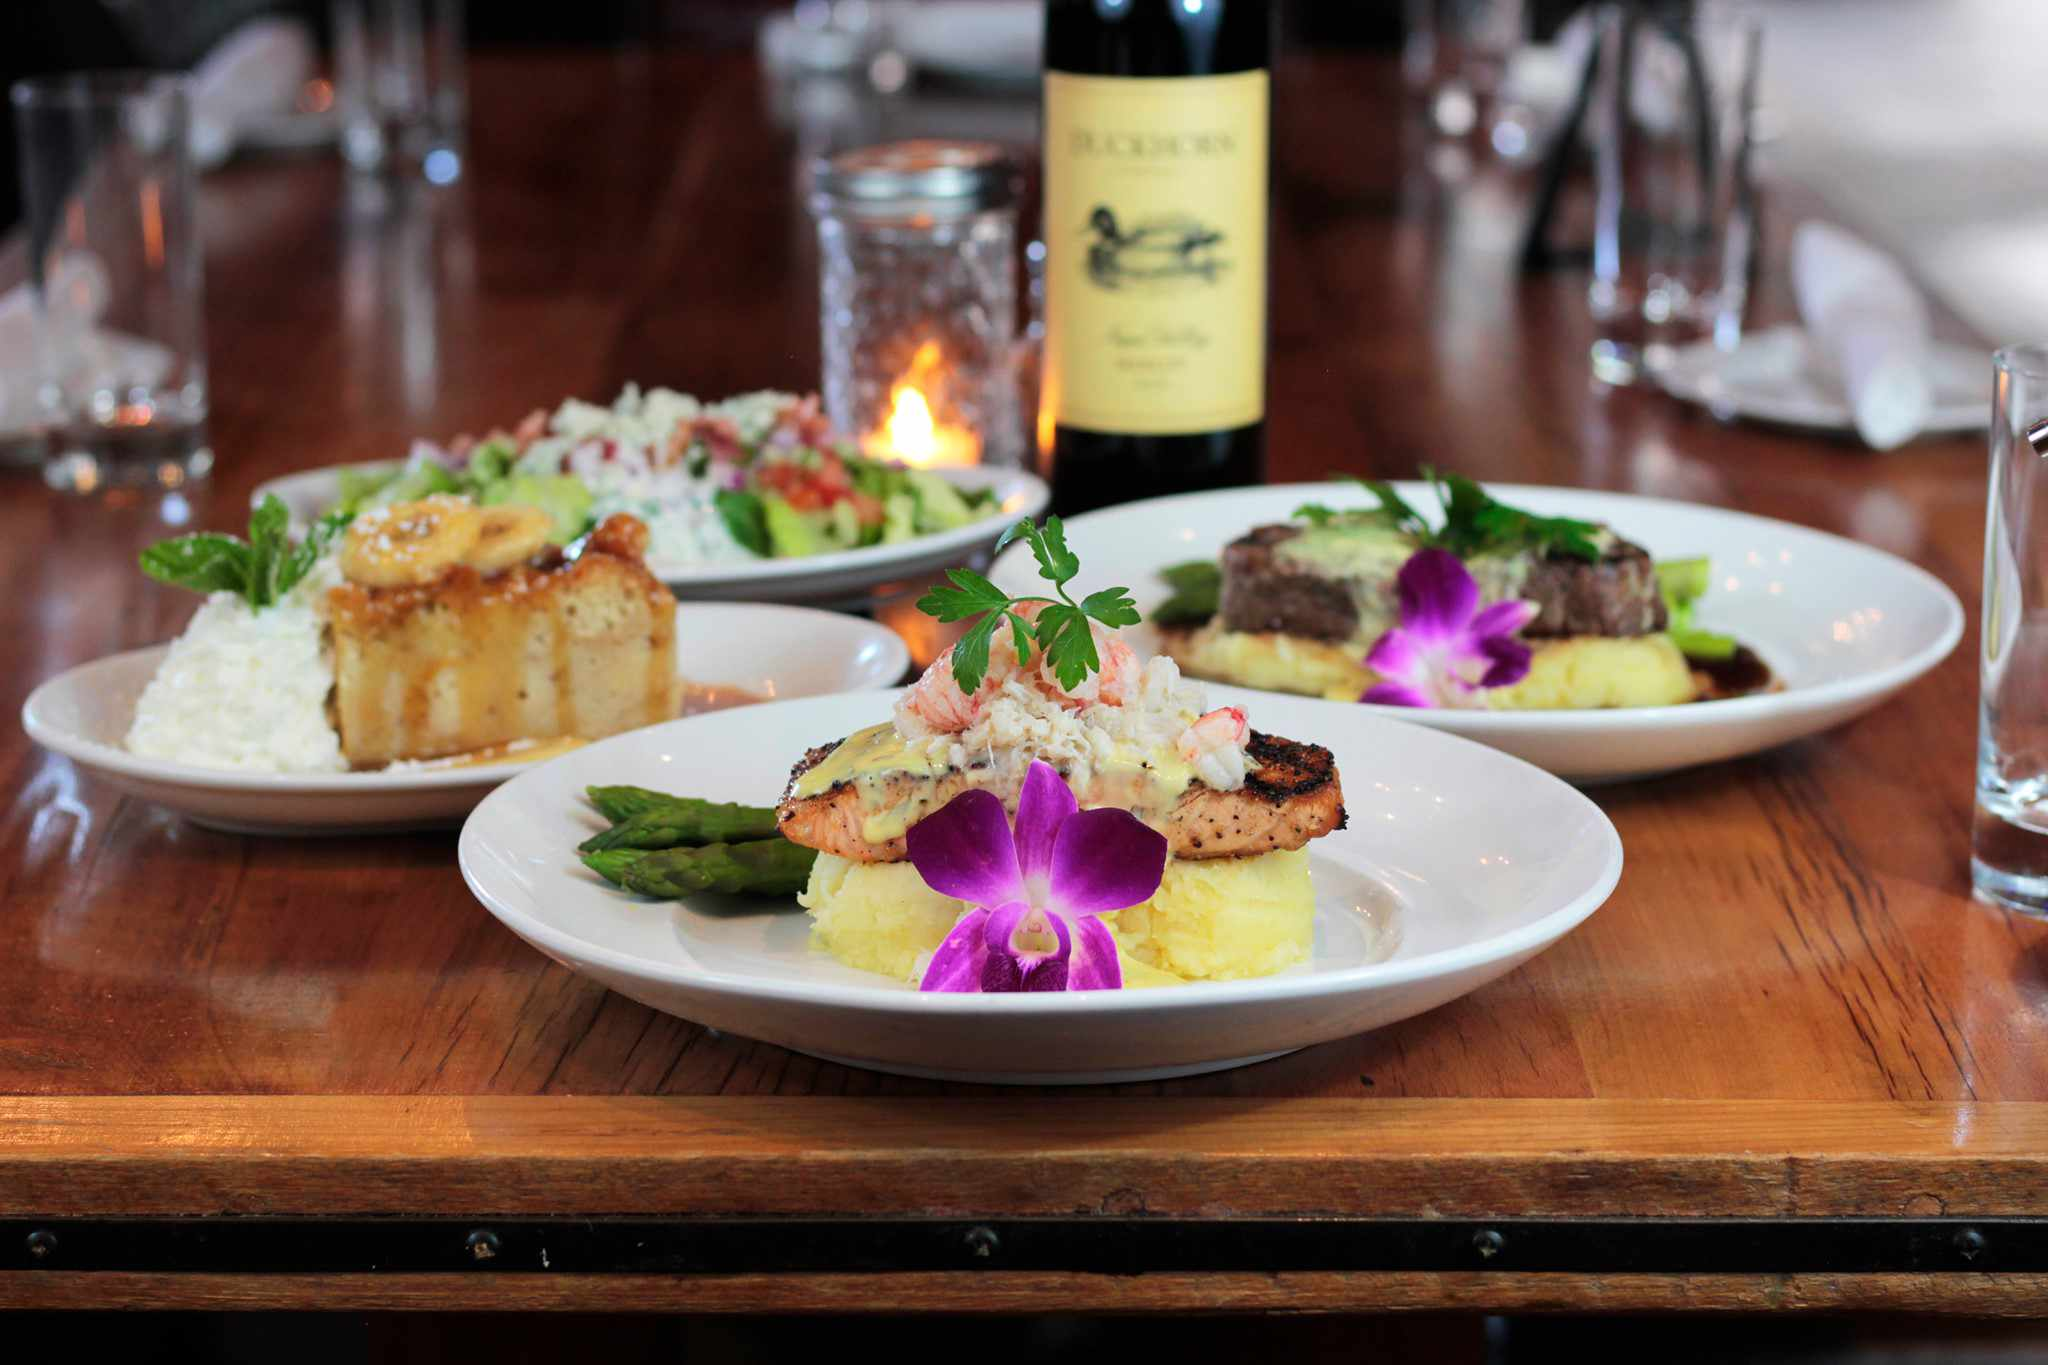 four entrees on a restaurant table with a bottle of wine. Two of the plates are garnished with a purple flower